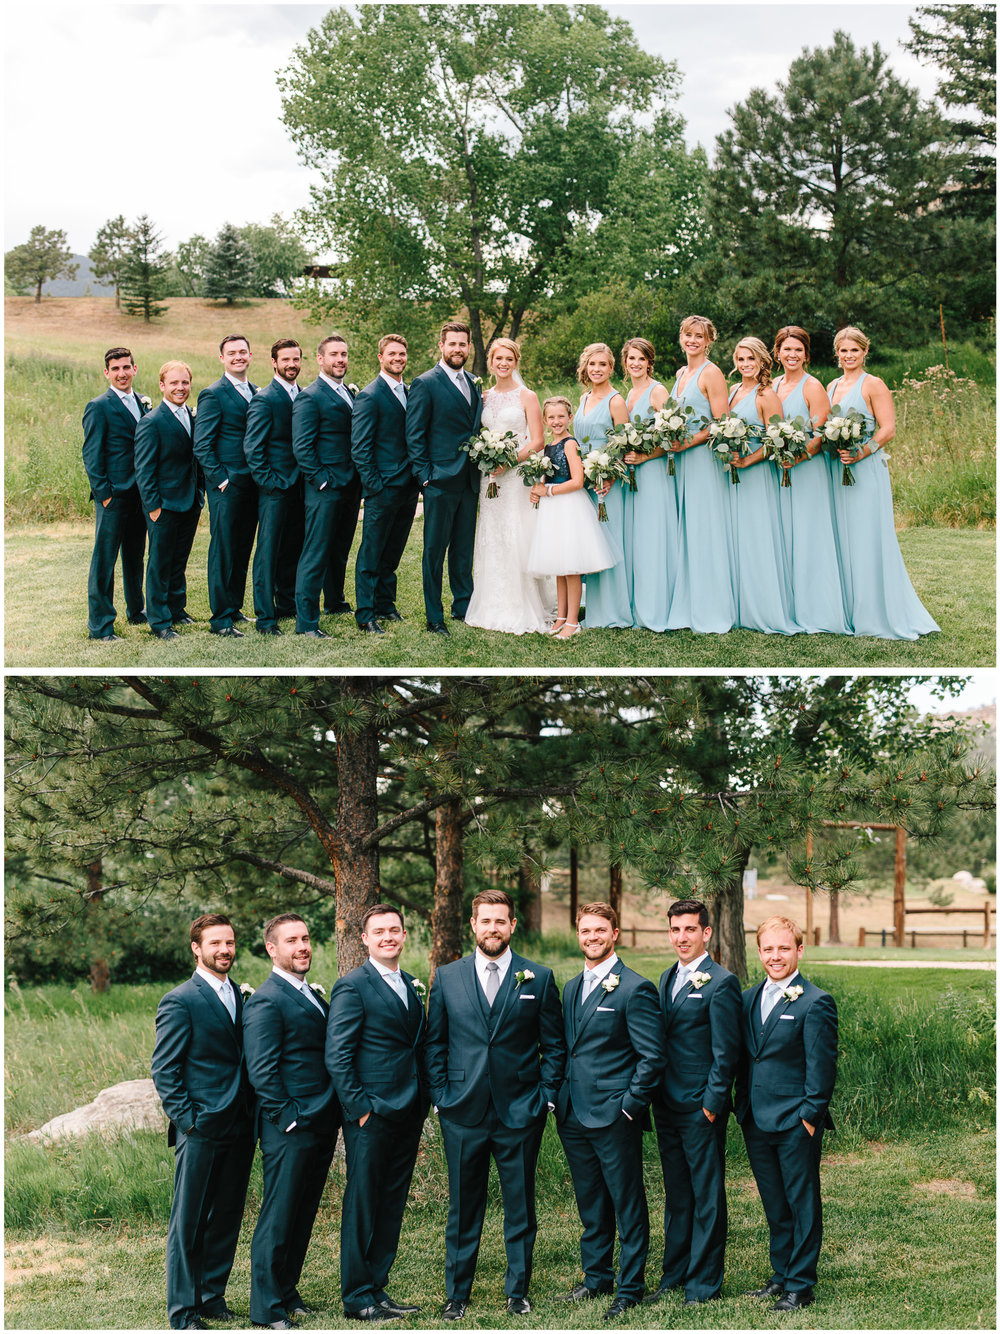 Spruce_Mountain_Ranch_Wedding_36.jpg